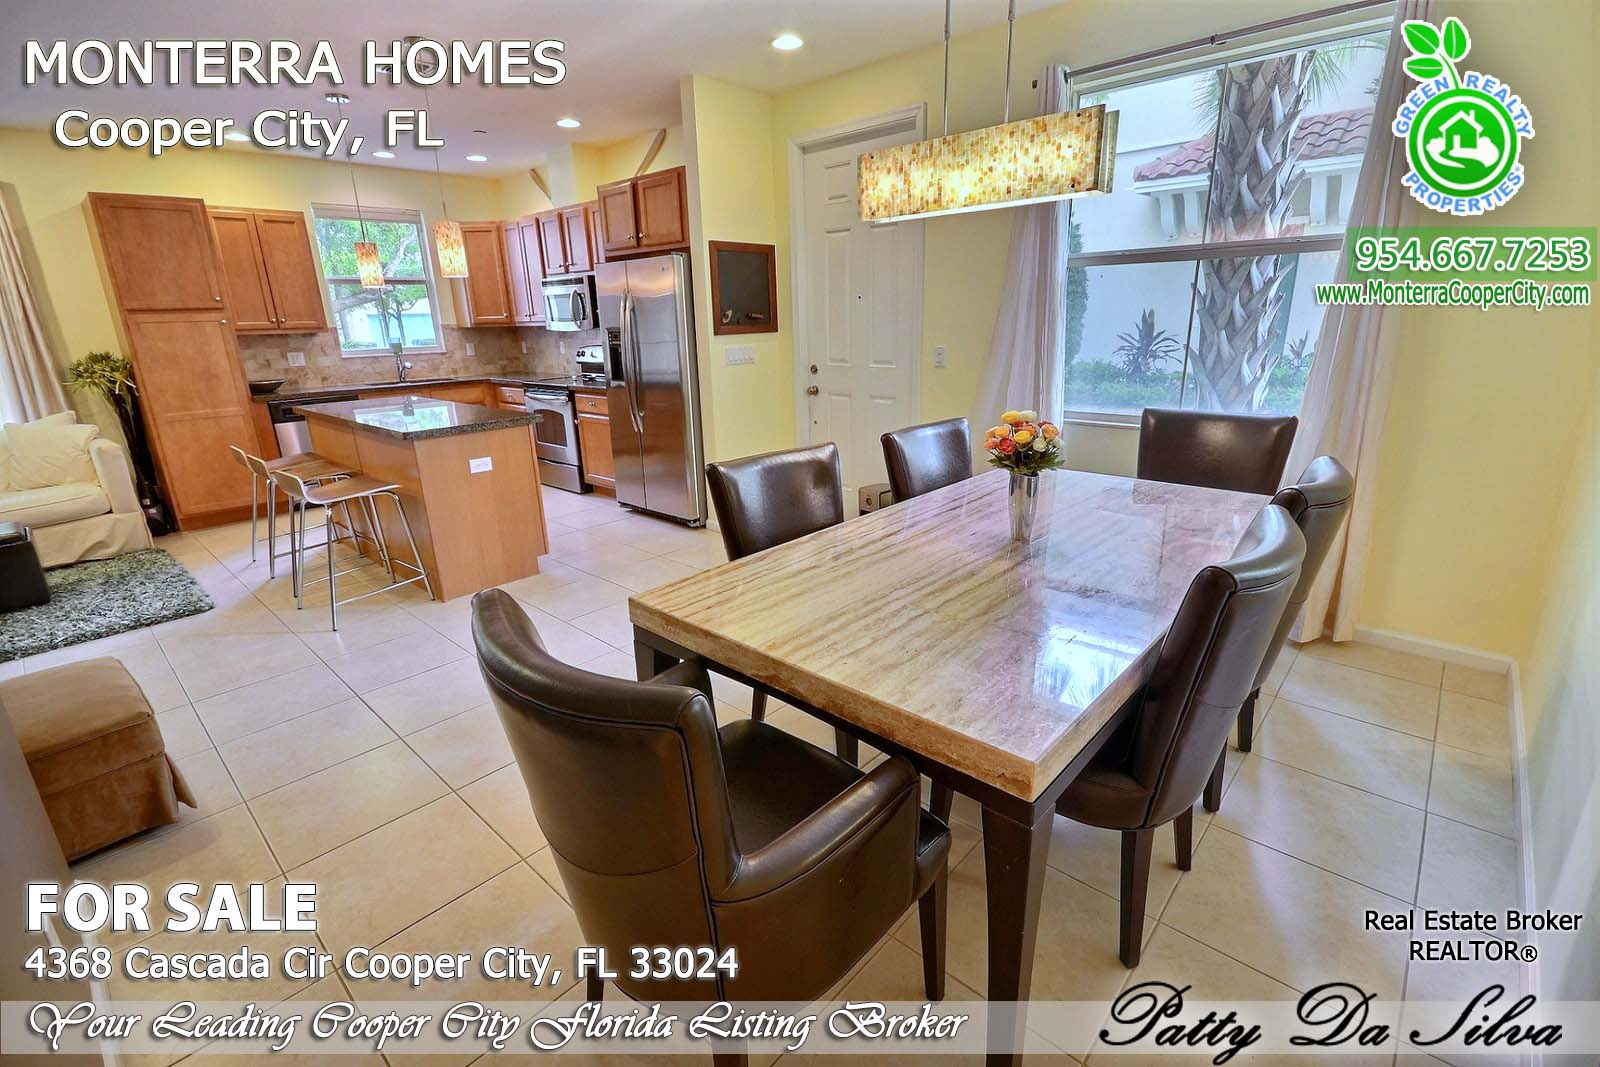 4368 Cascada Cir, Cooper City FL (6)